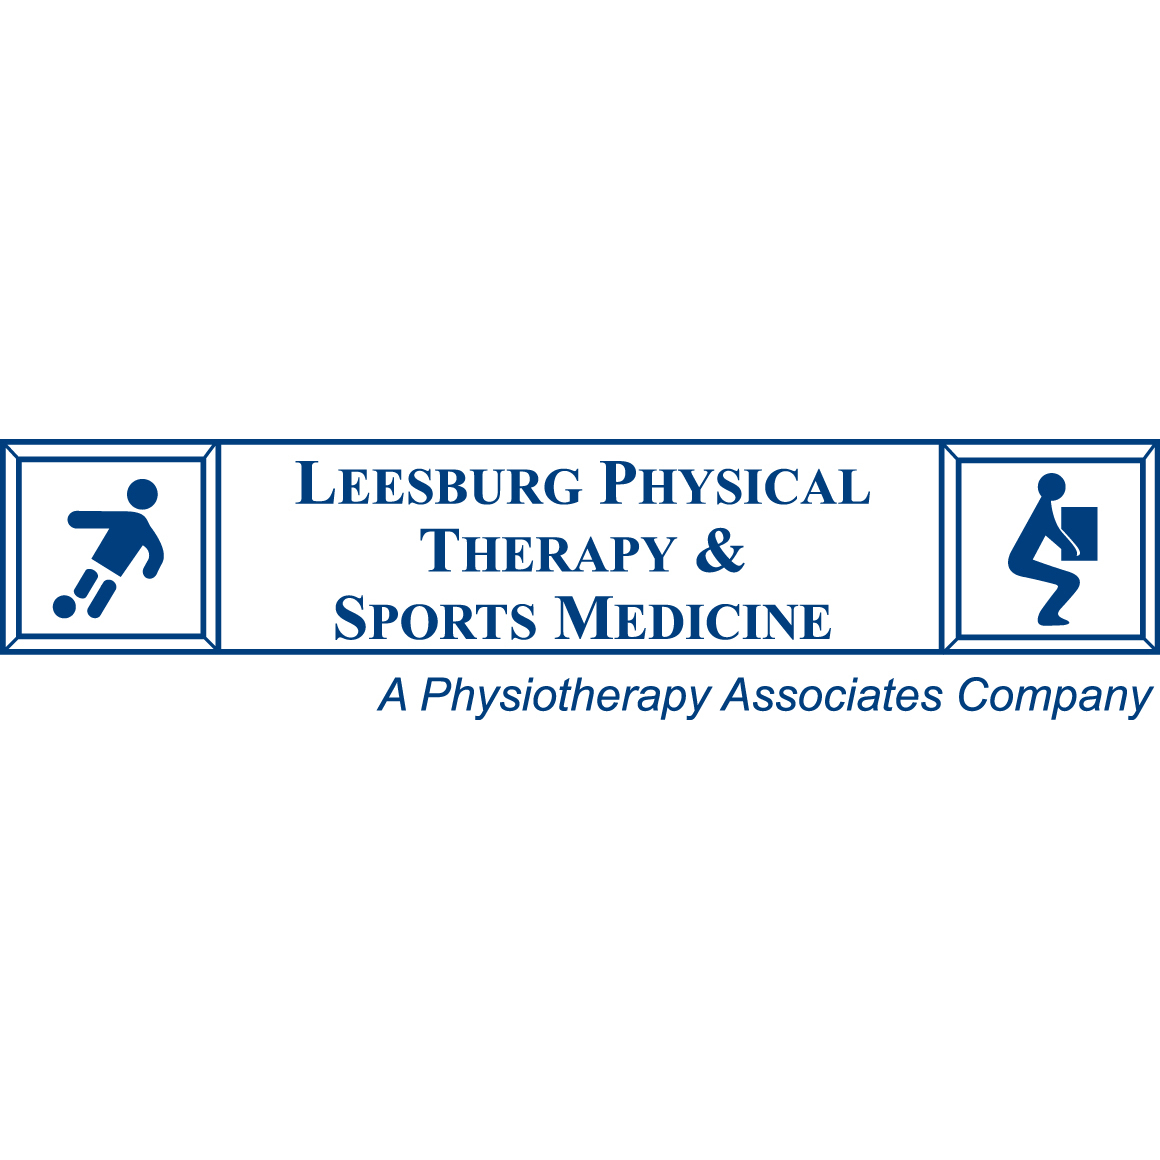 Leesburg Physical Therapy